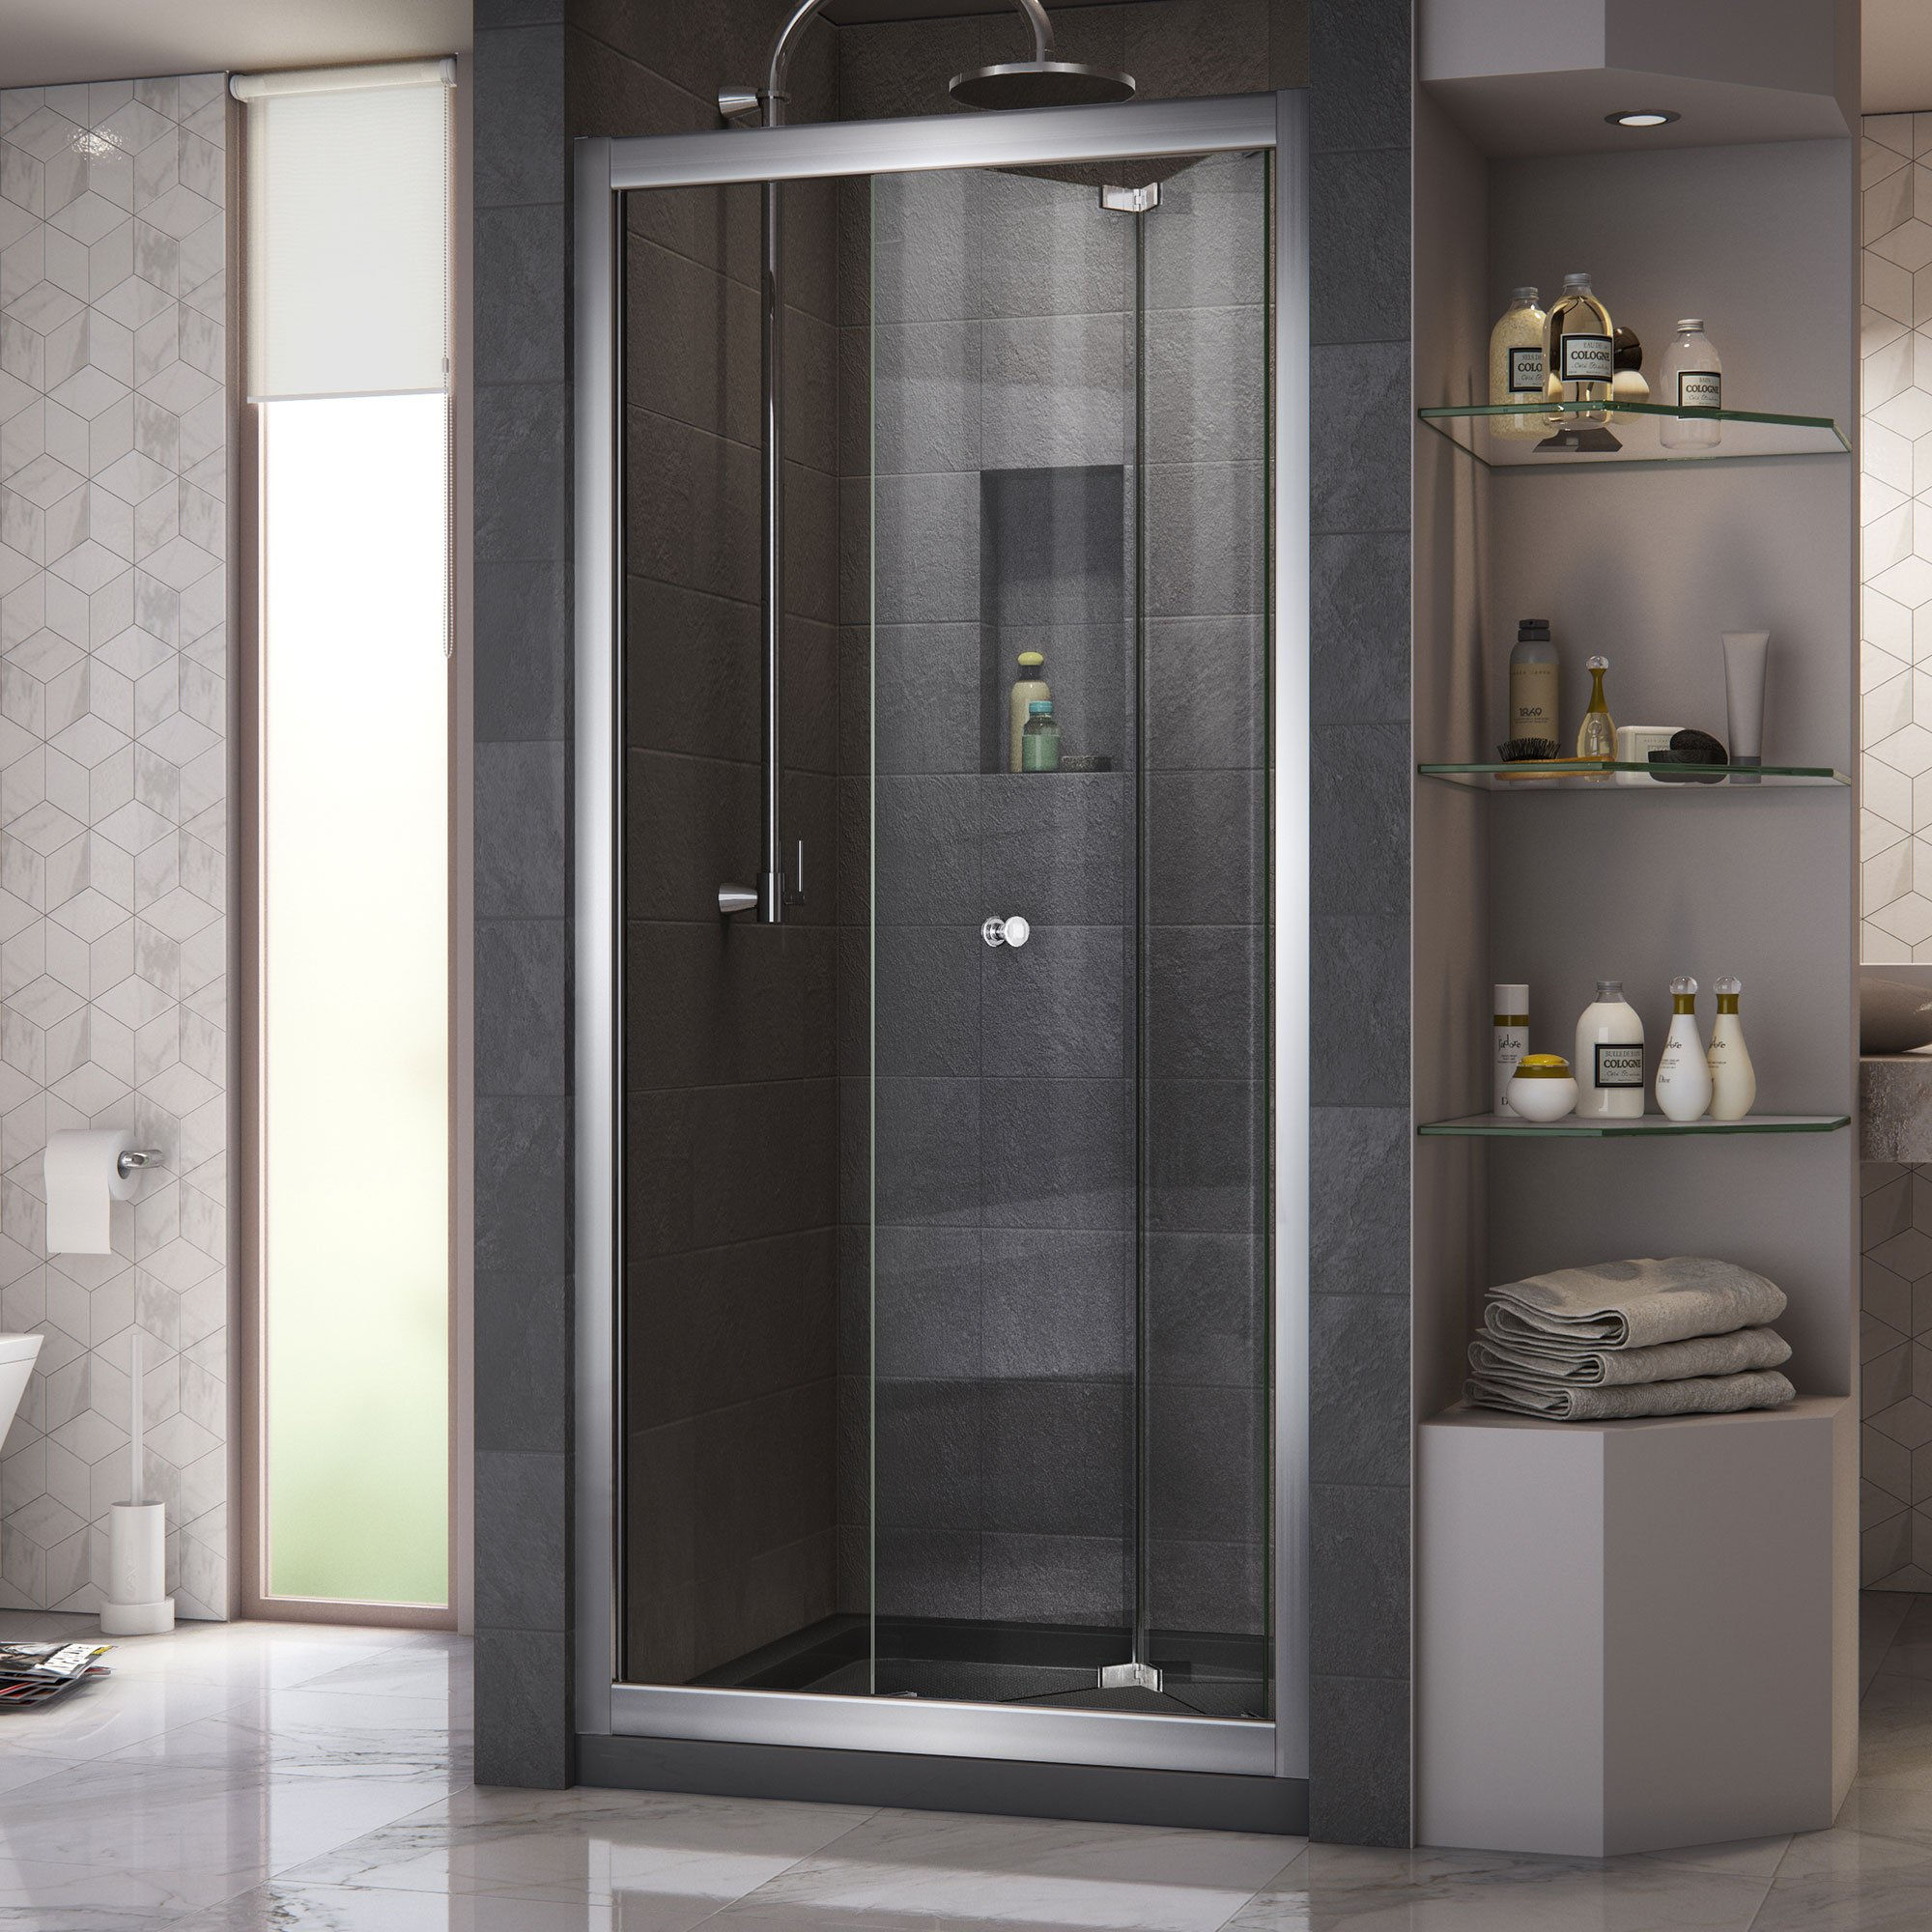 DreamLine Butterfly 34-35 1/2 in. Width, Frameless Bi-Fold Shower Door, 1/4'' Glass, Chrome Finish by DreamLine (Image #3)